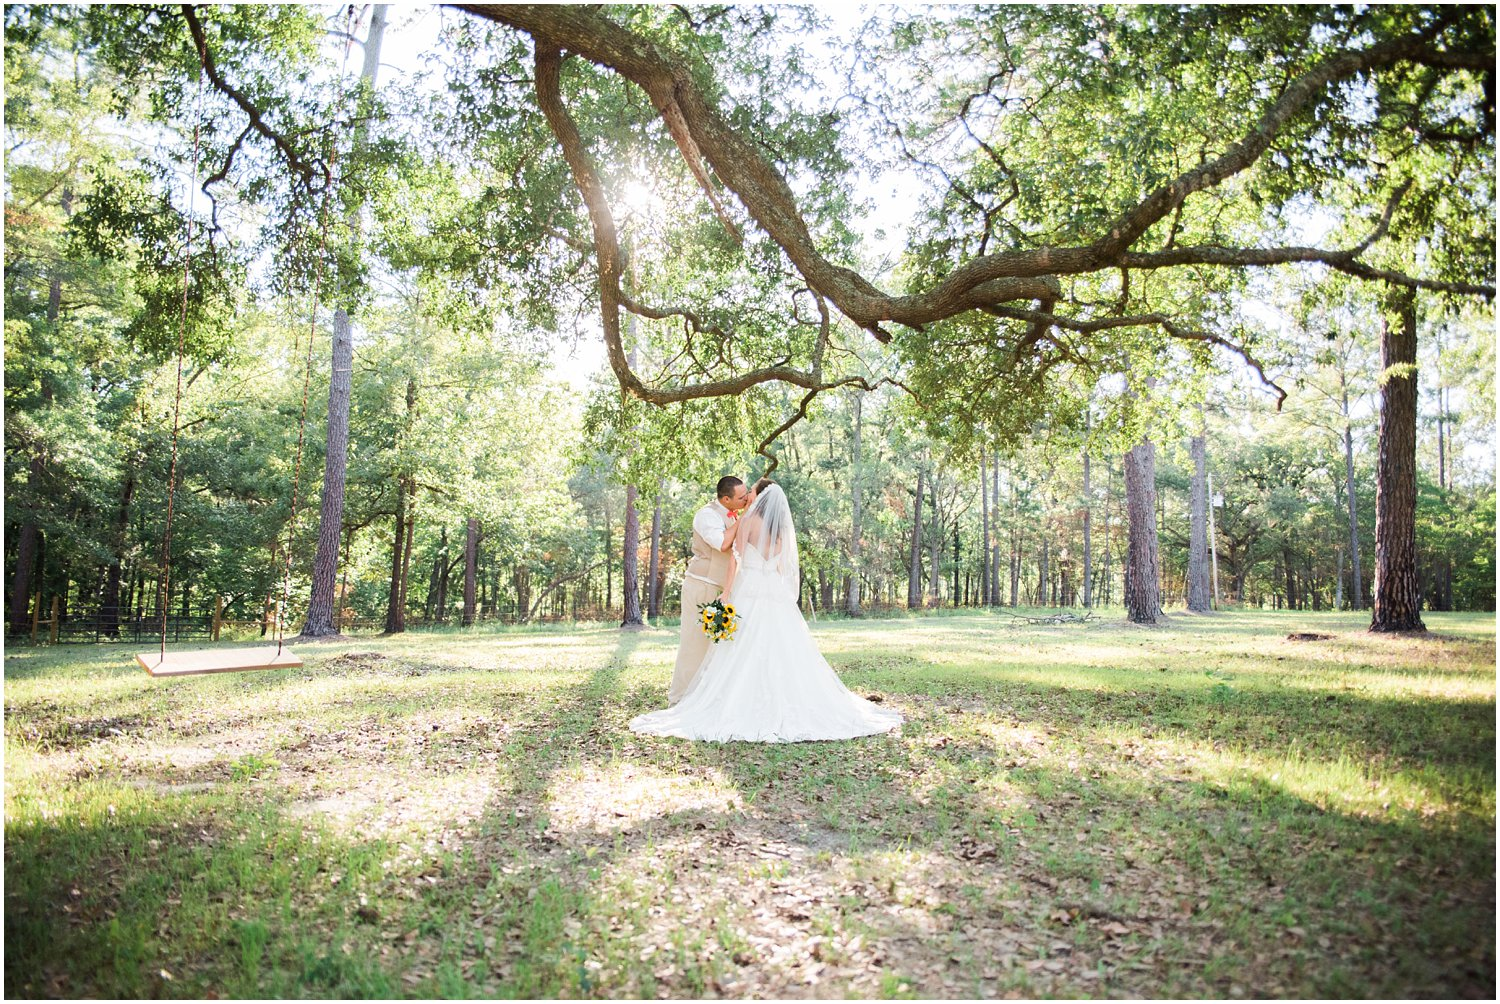 Kyle and Haley Wedding day at Loblolly Rise Plantation, Thomasville Georgia_0071.jpg